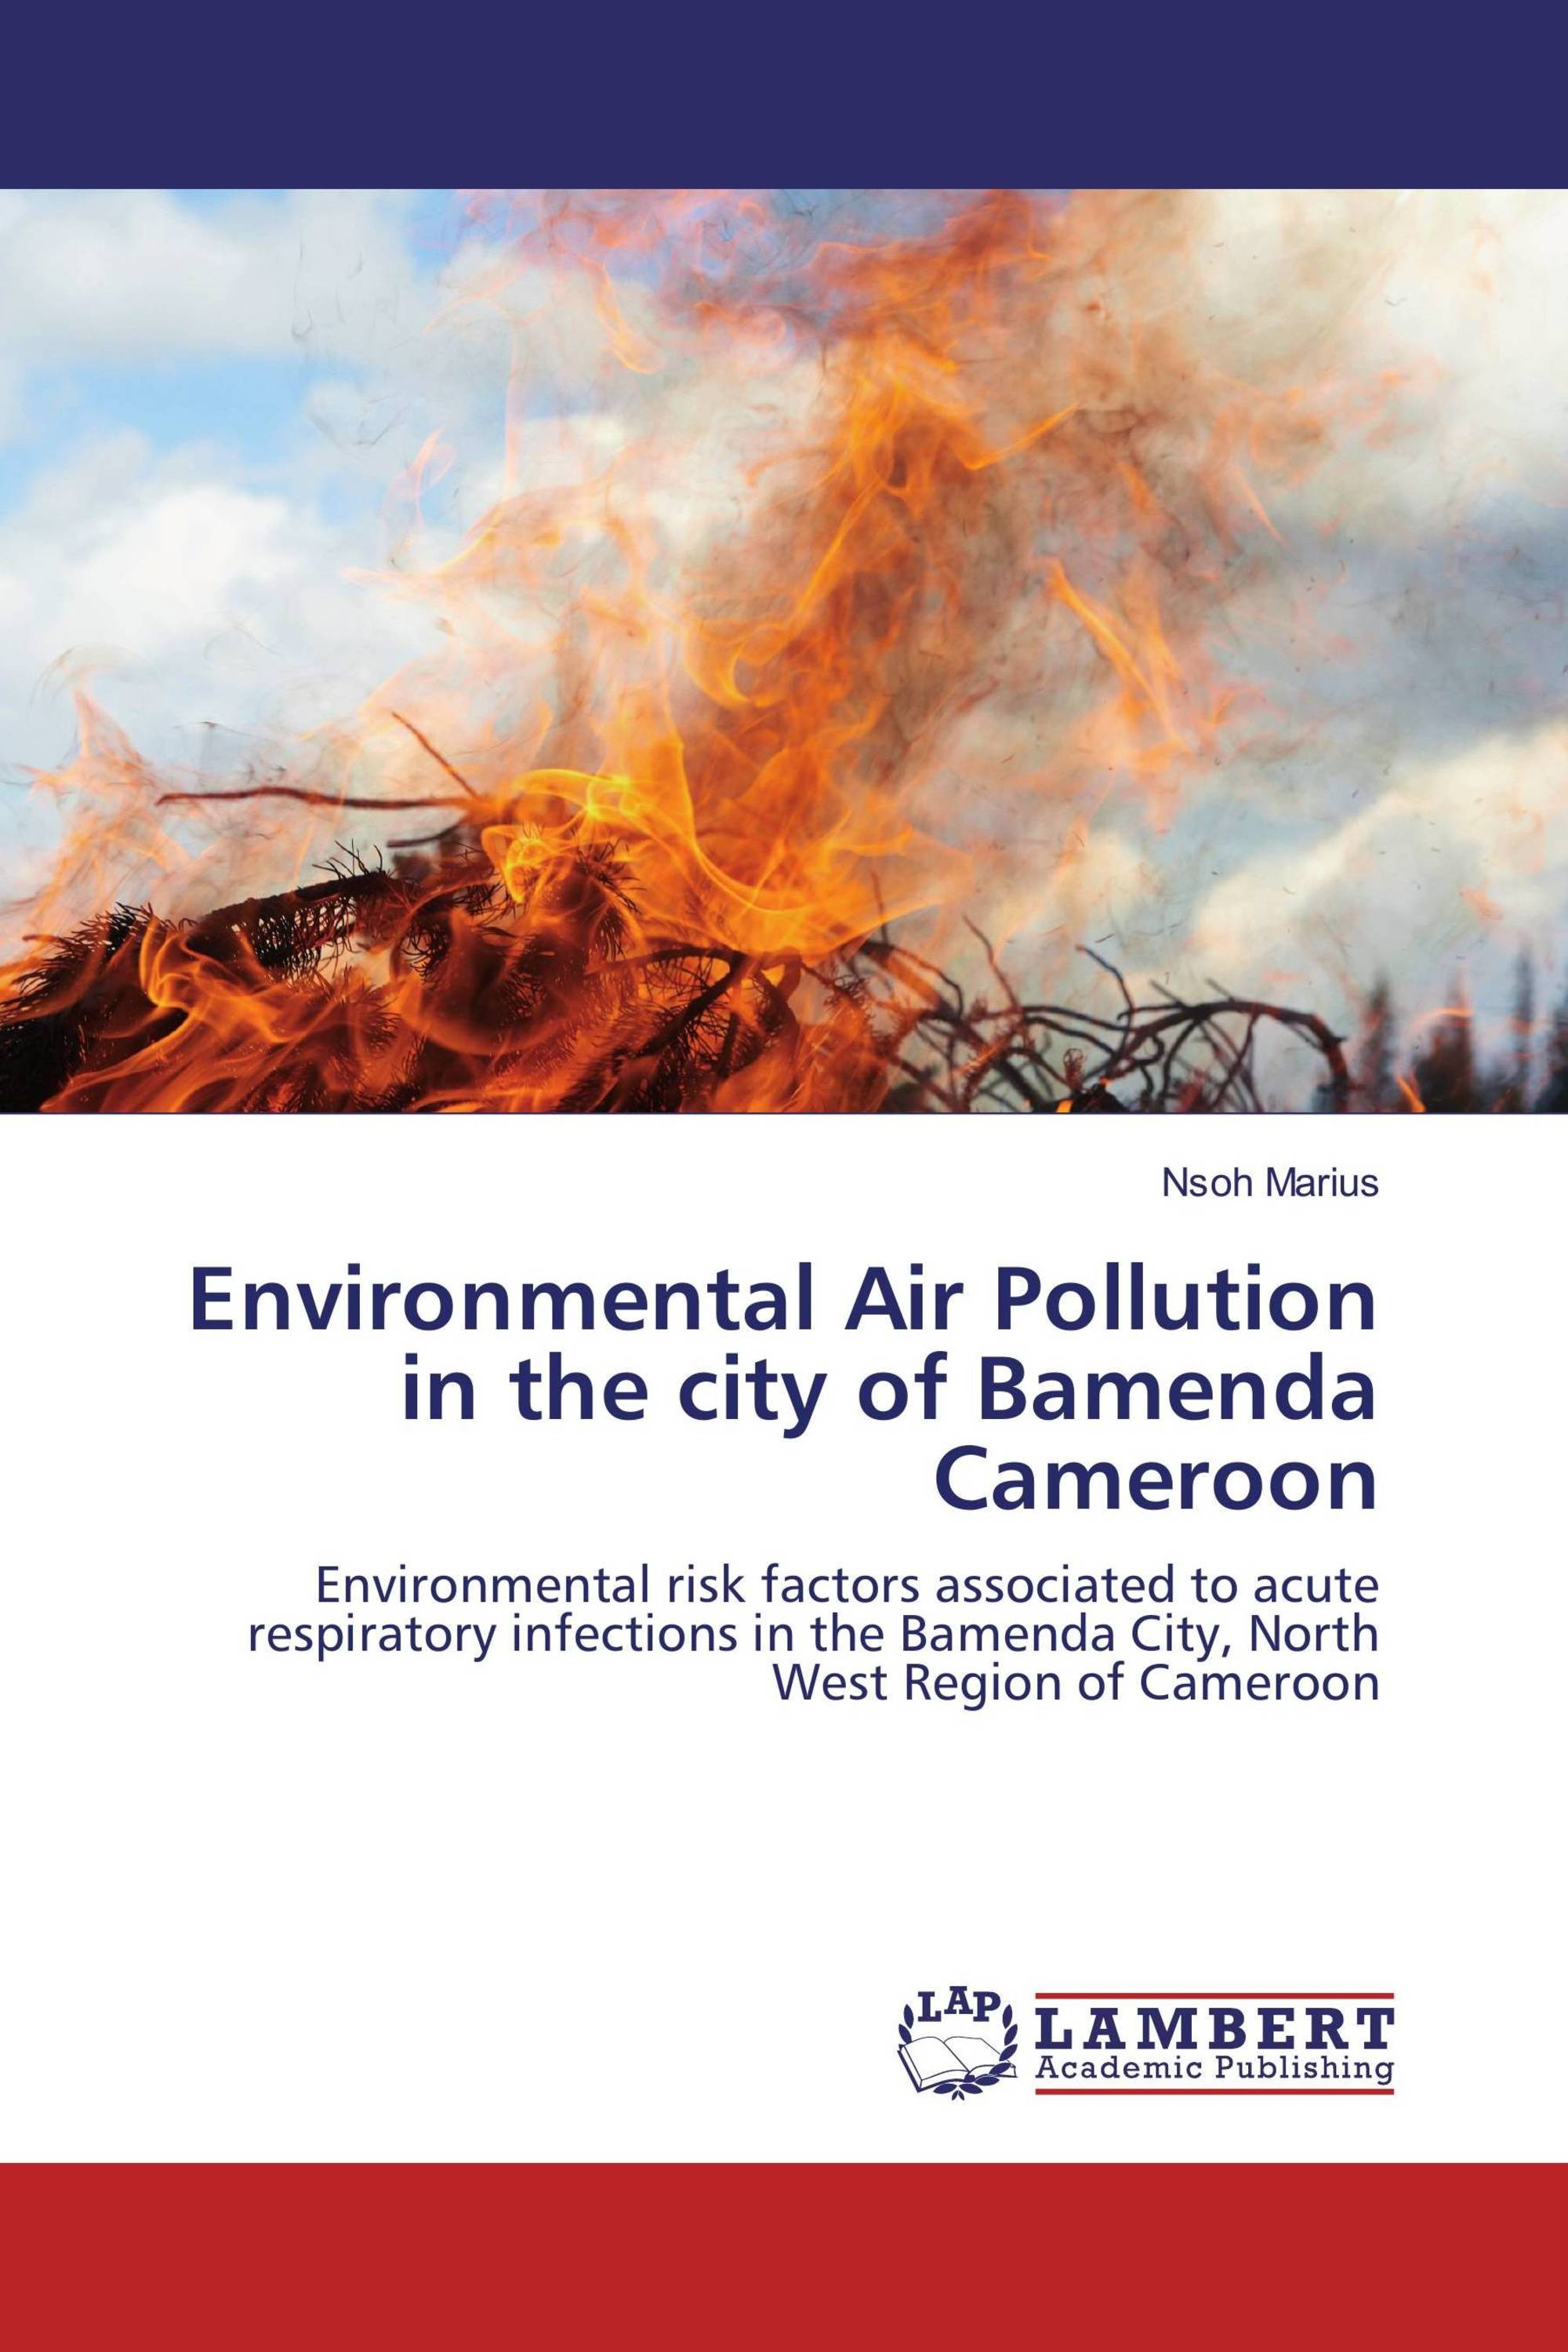 Environmental Air Pollution in the city of Bamenda Cameroon